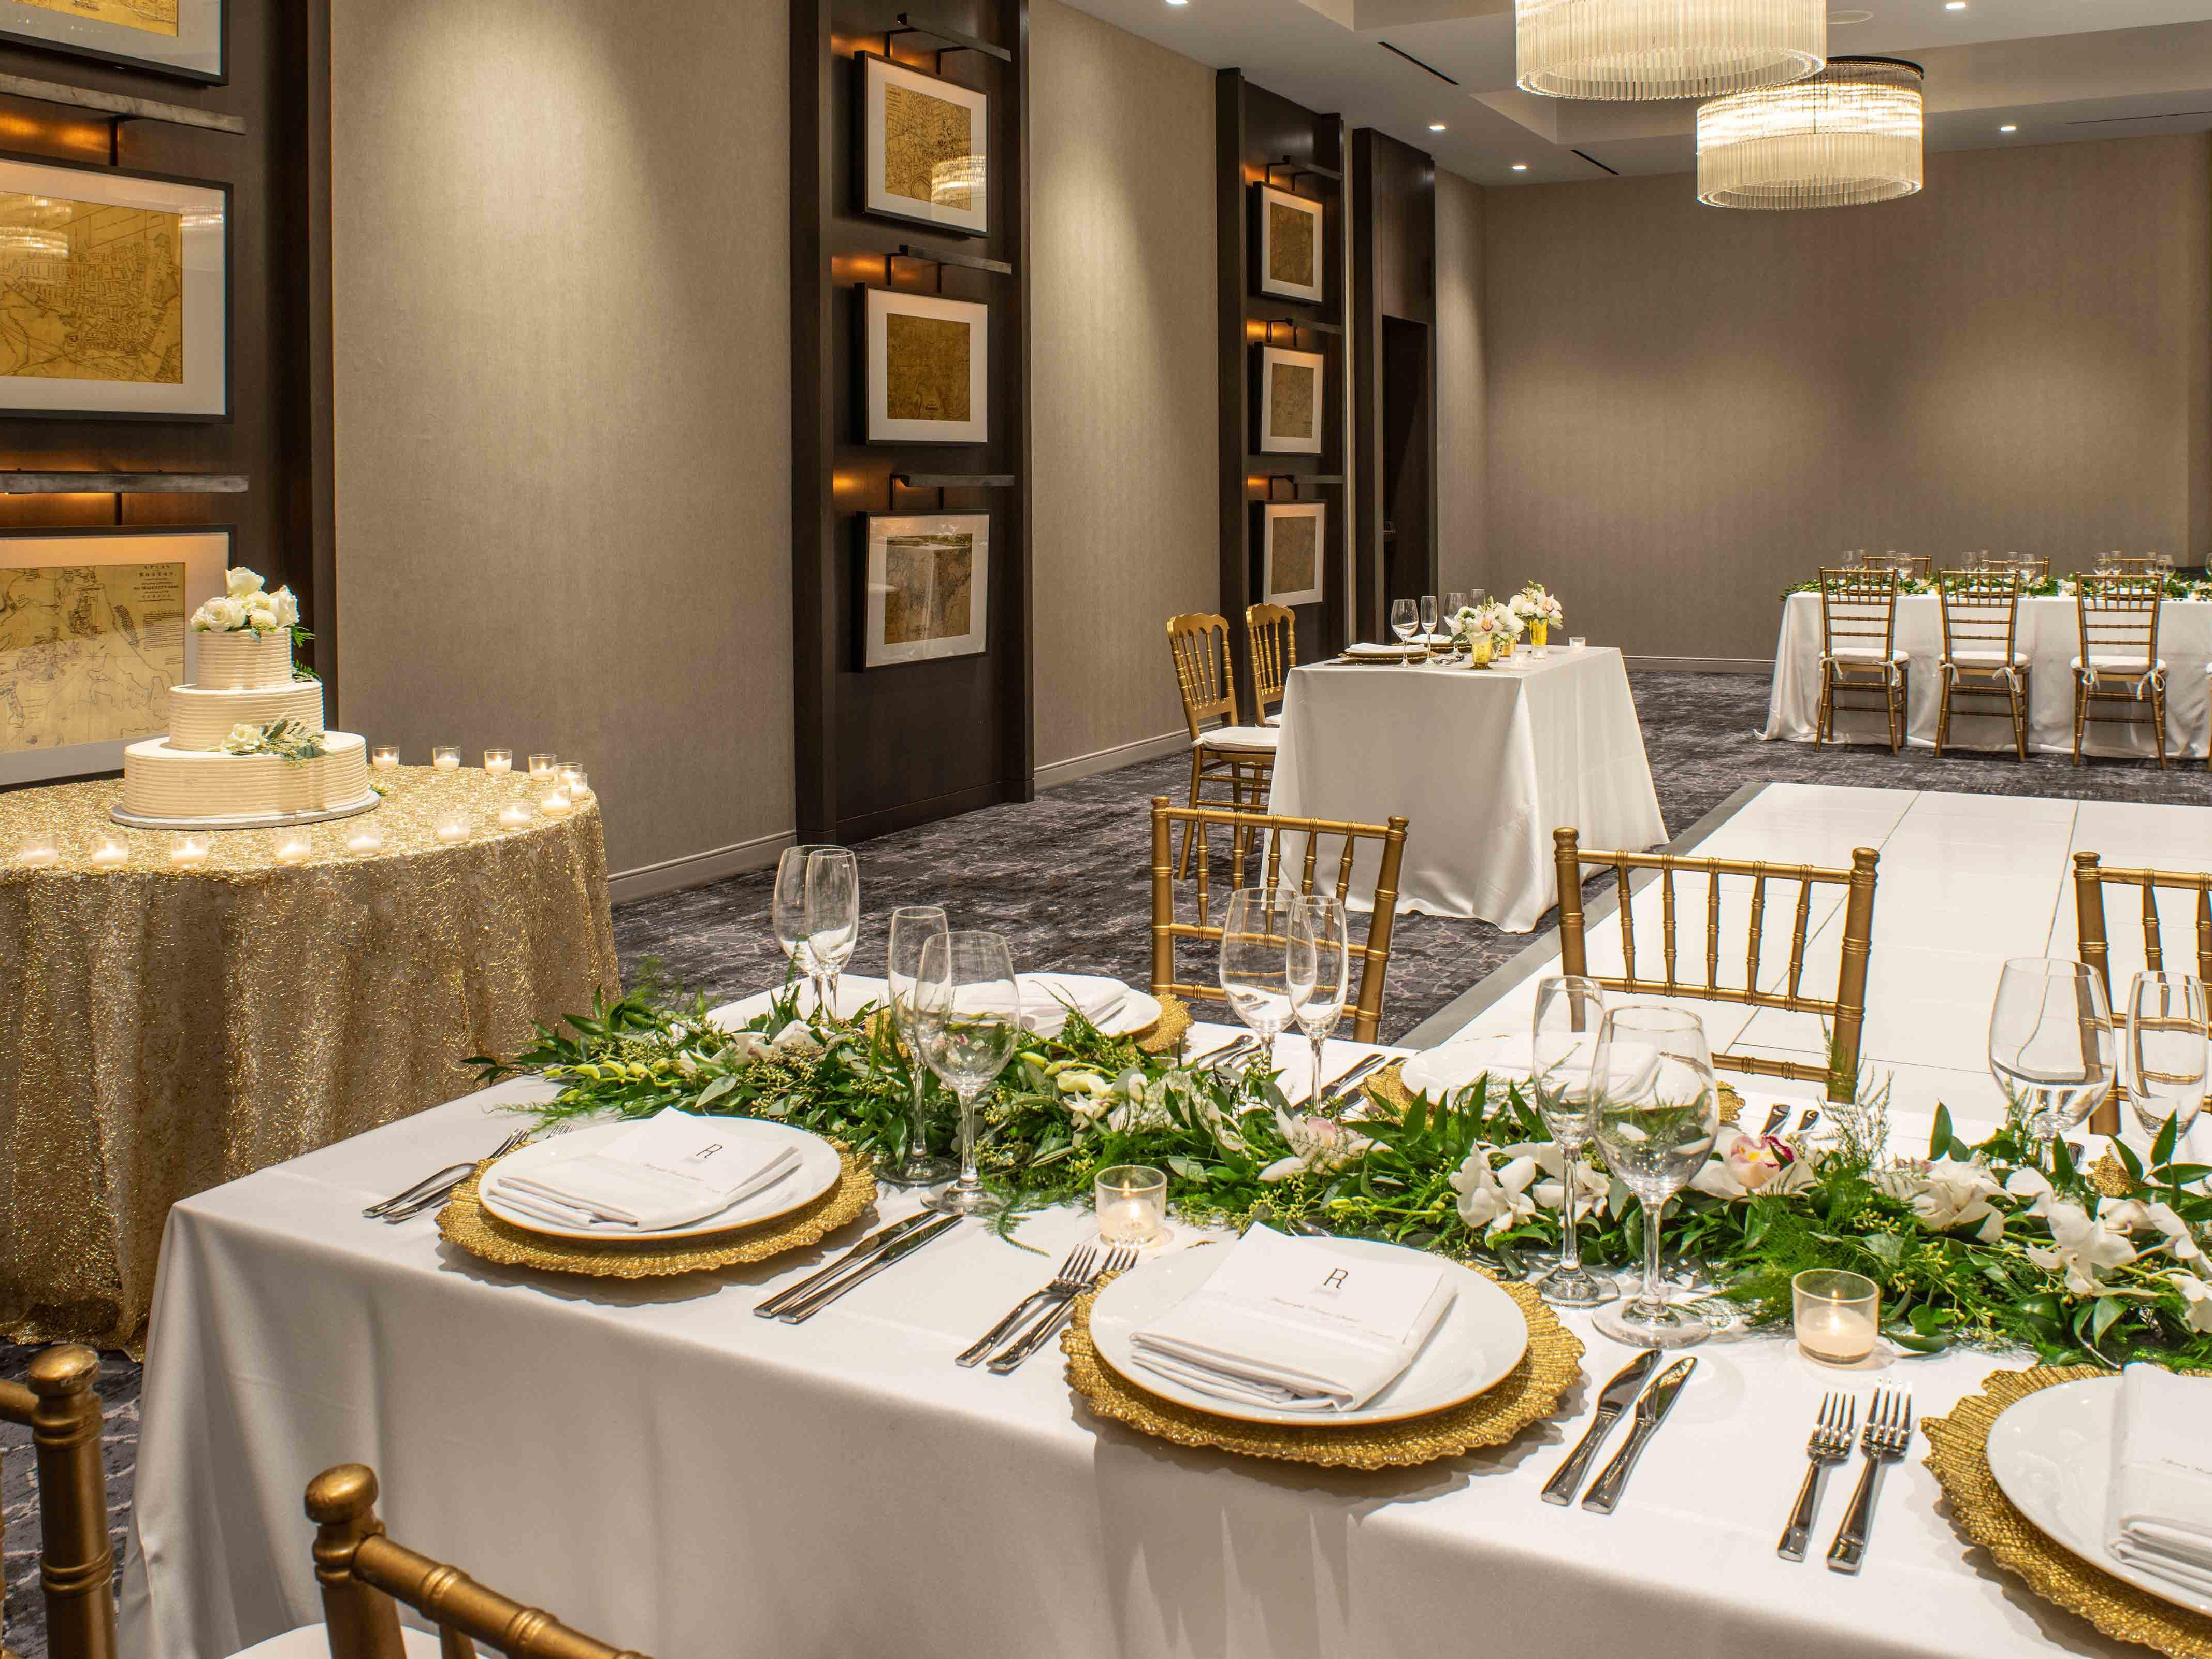 Event space set for wedding with cake on table